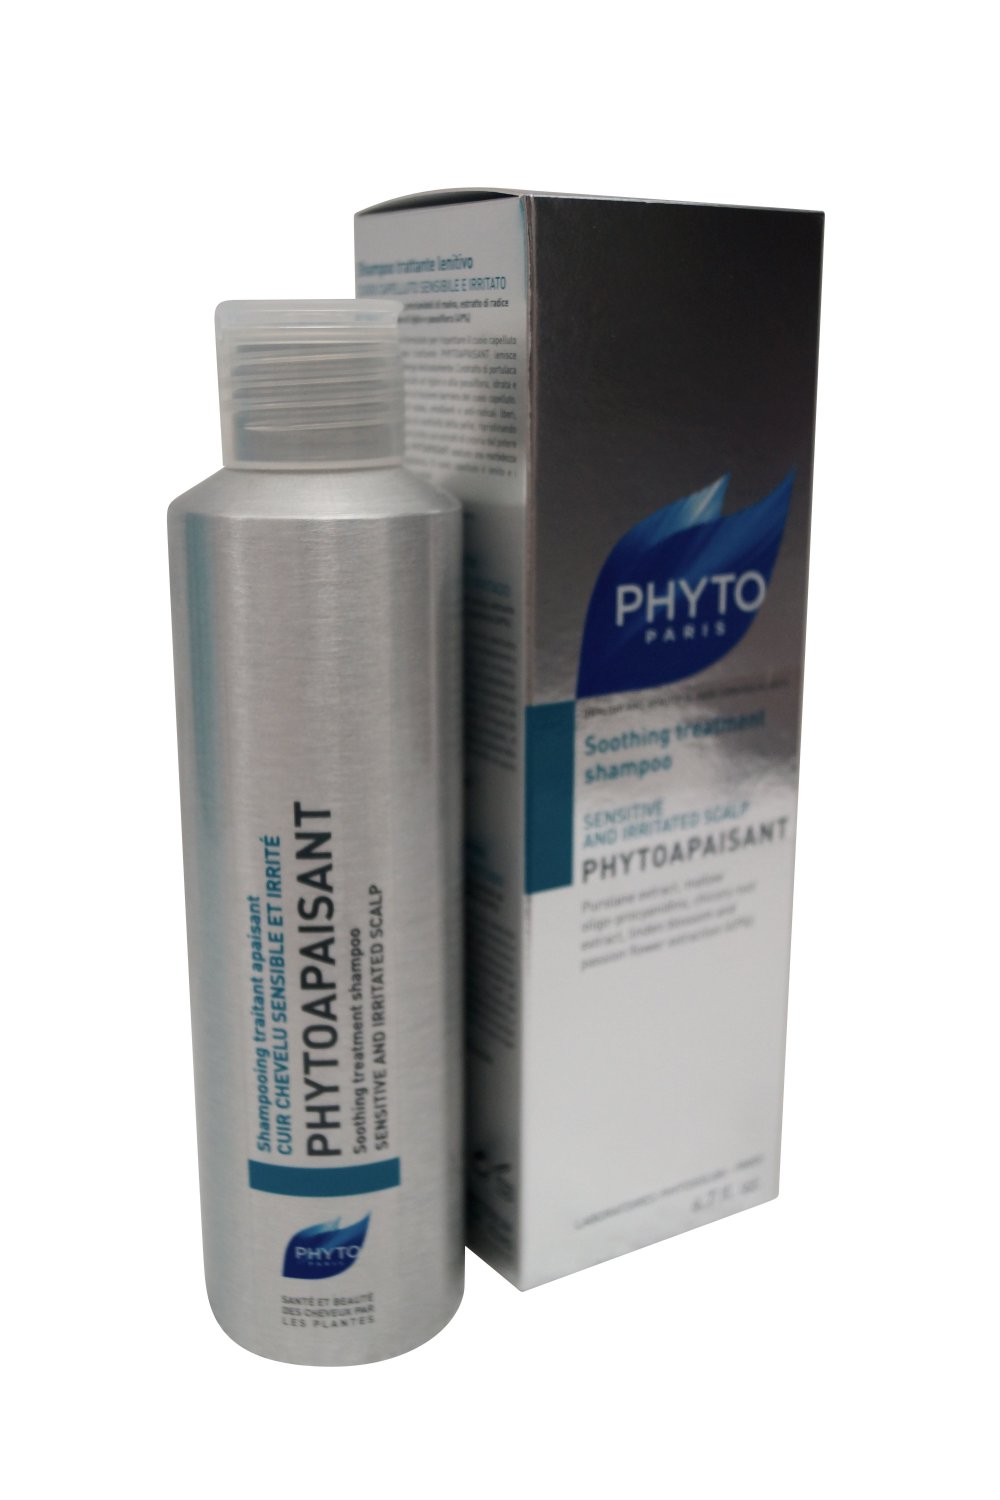 PHYTO PHYTOAPAISANT Soothing Treatment Shampoo, 6.7 fl. oz.